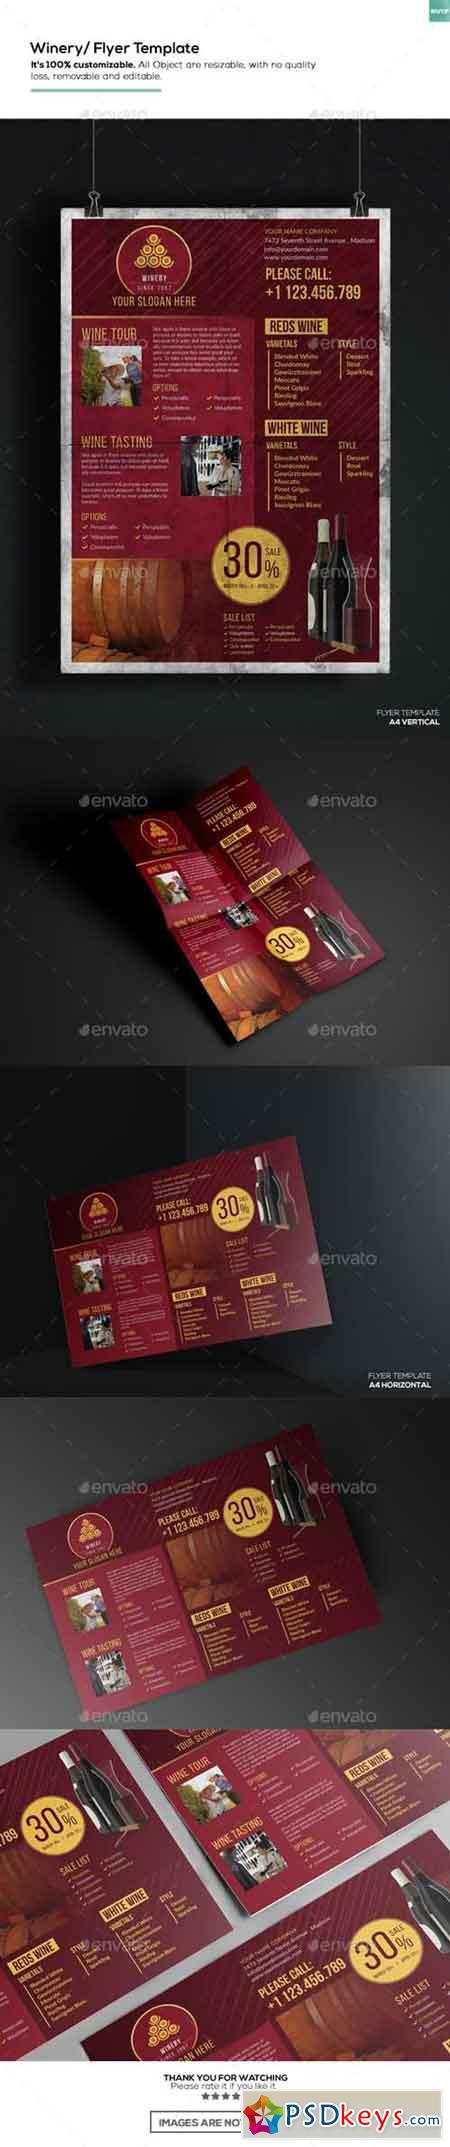 Winery - Flyer Template 15910762